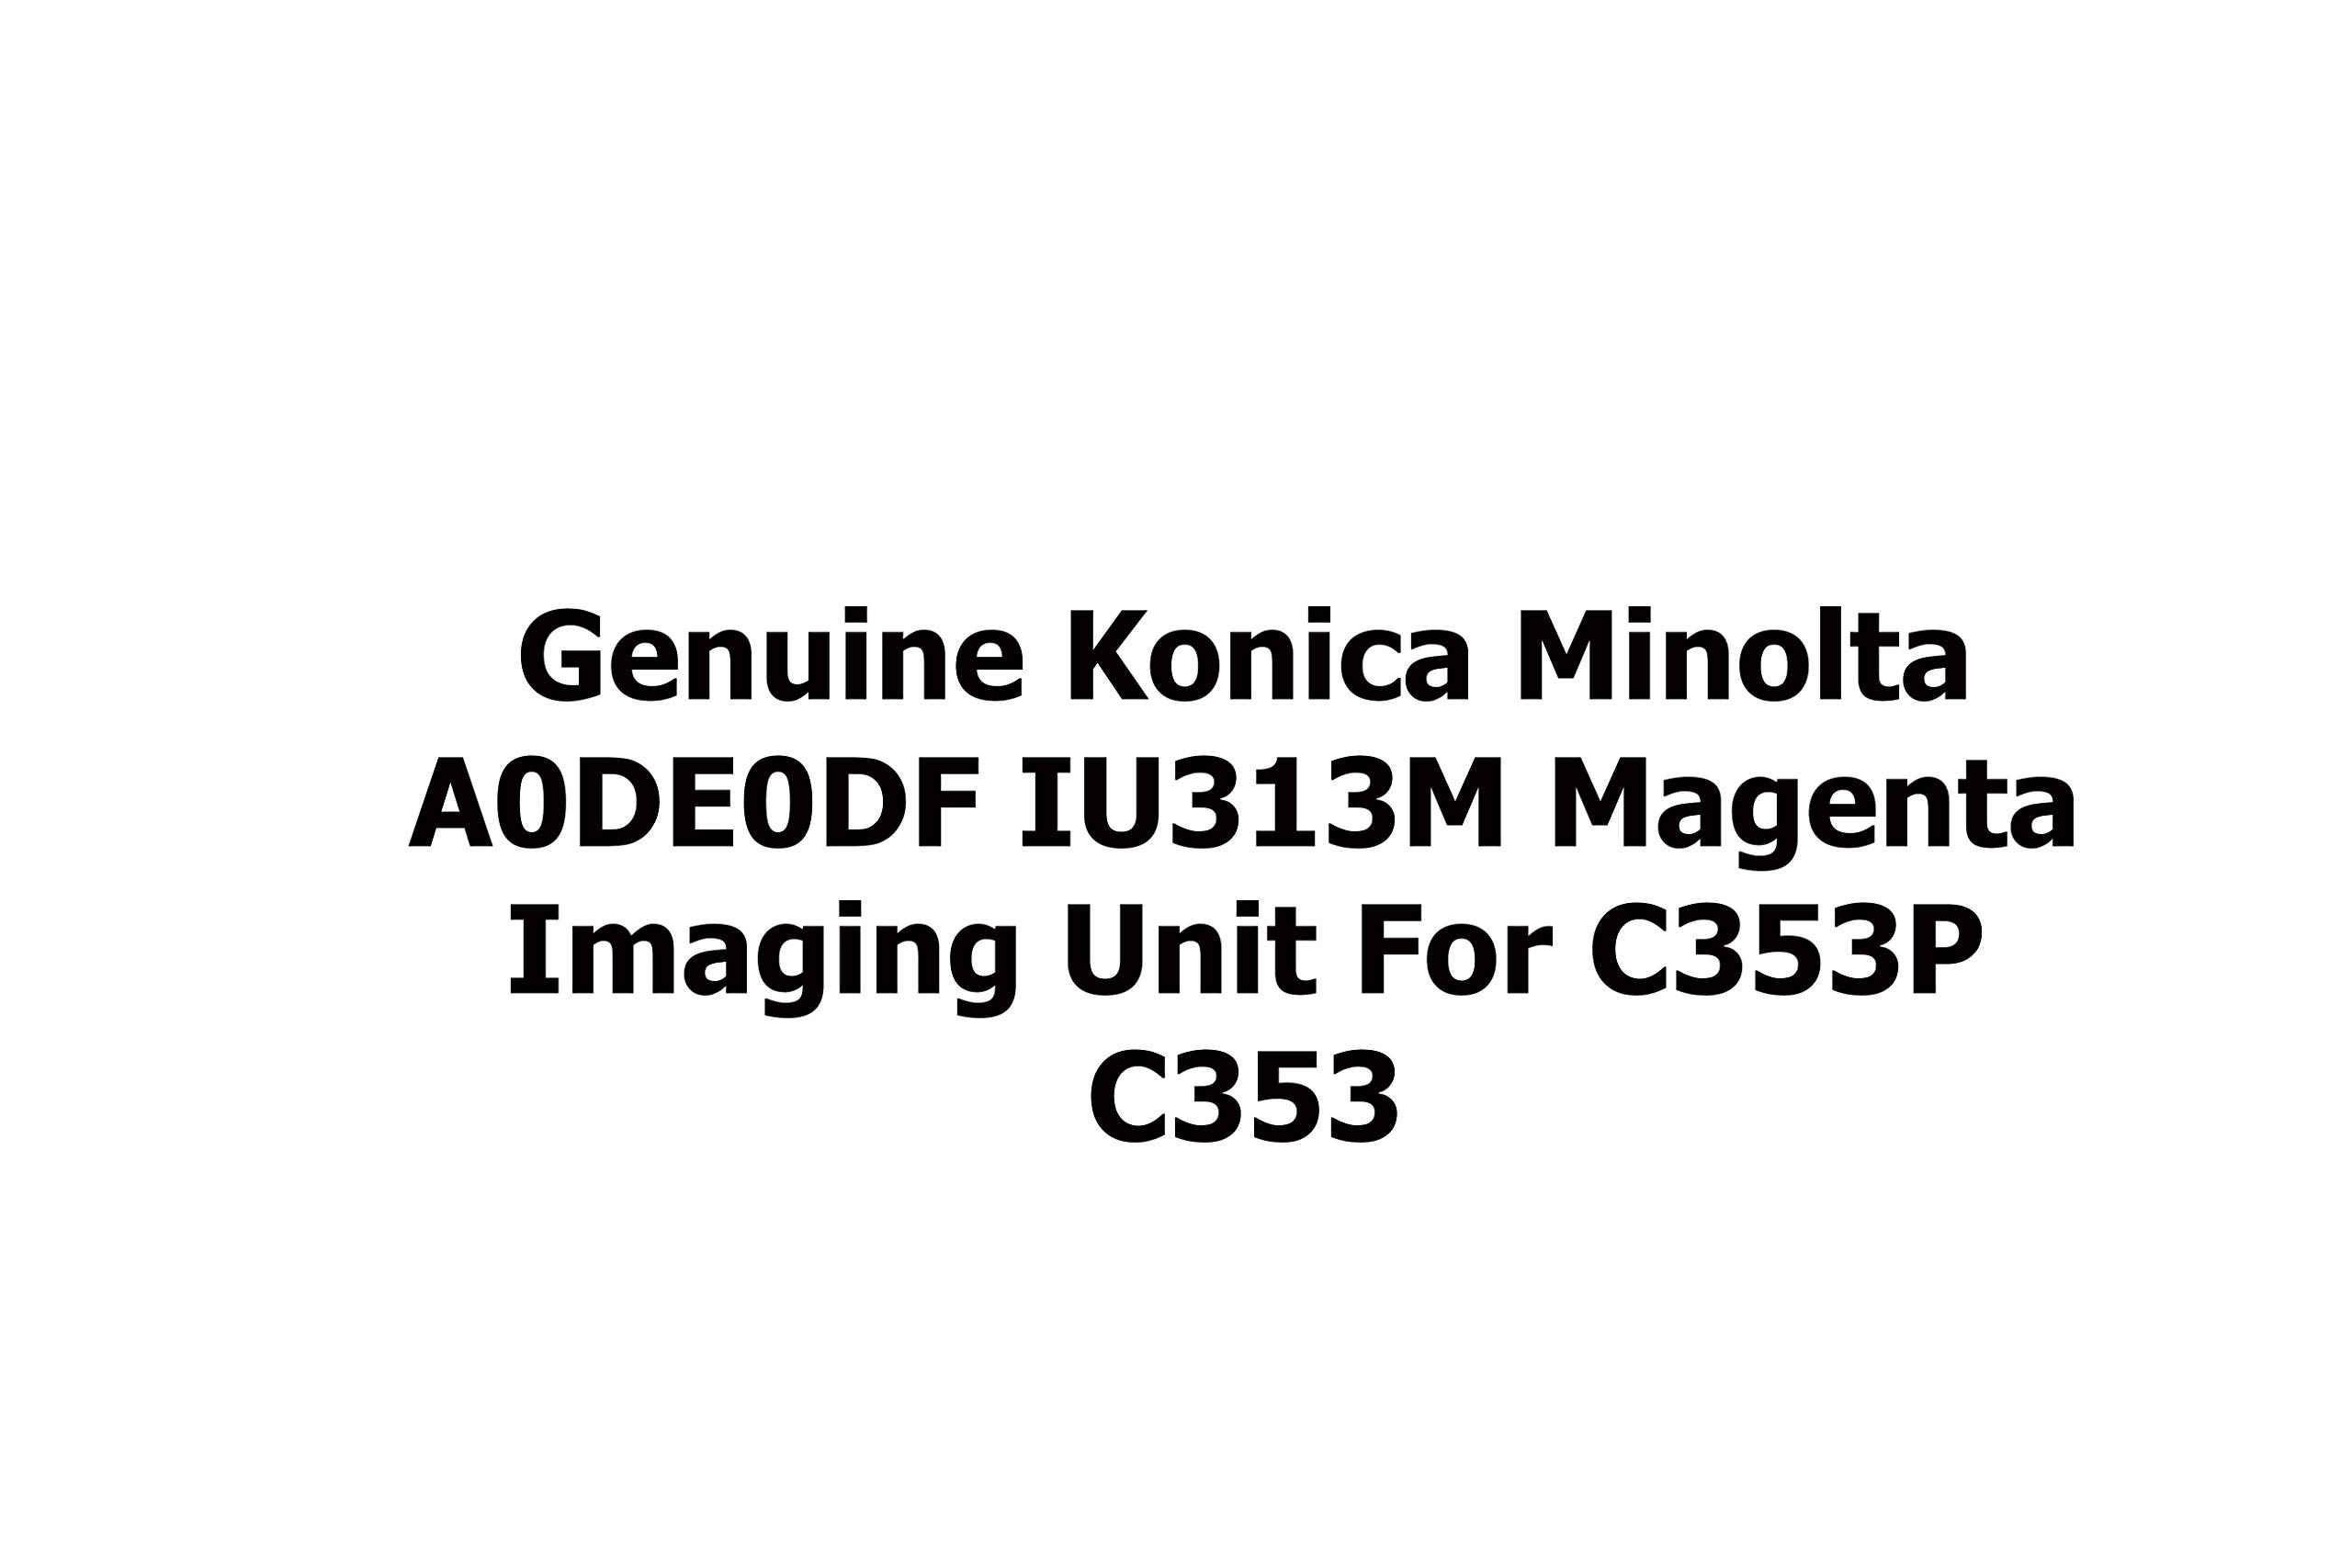 Genuine Konica Minolta A0DE0DF IU313M Magenta Imaging Unit for C353P C353